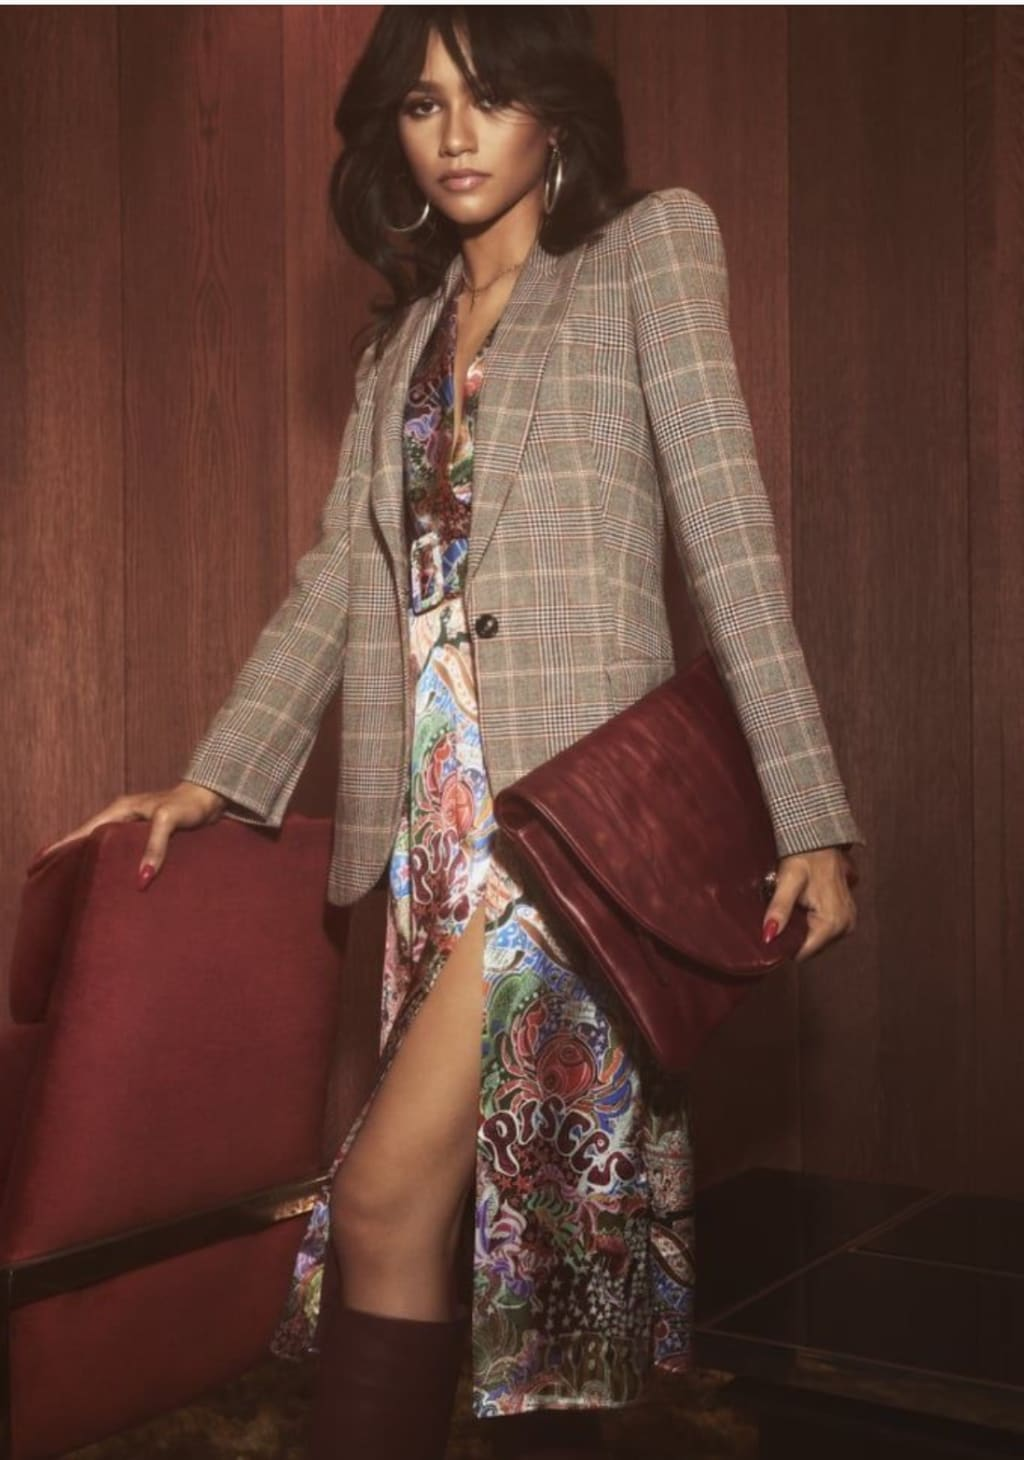 Zendaya's Tommy Hilfiger Collaboration Is Everything